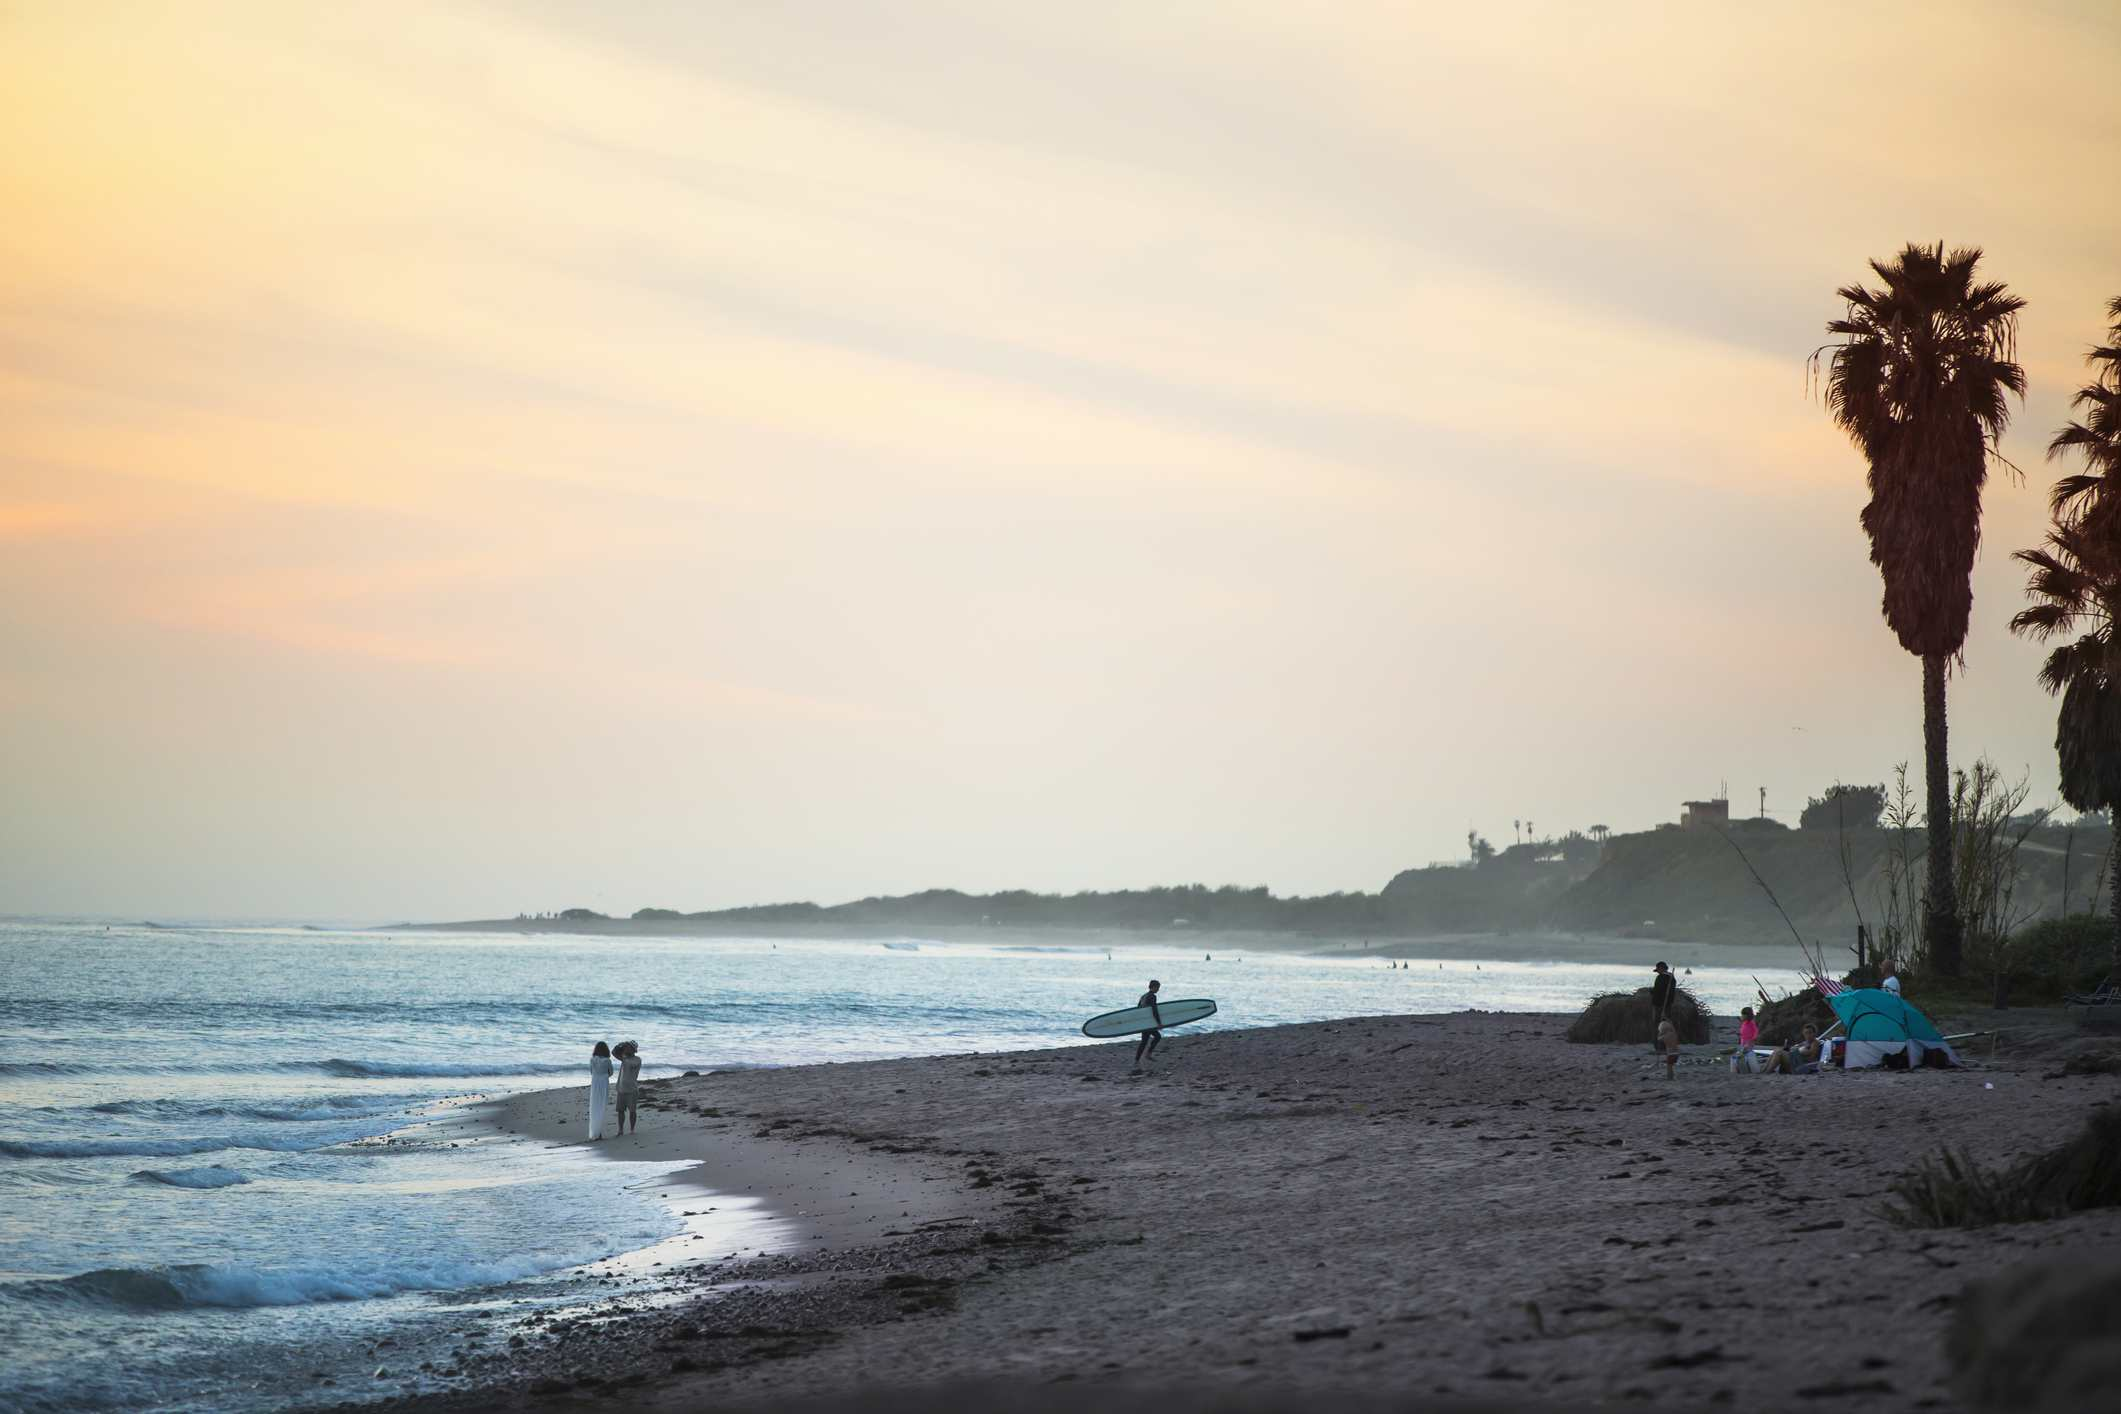 A sunset surf session at San Onofre State Beach in San Clemente, California.